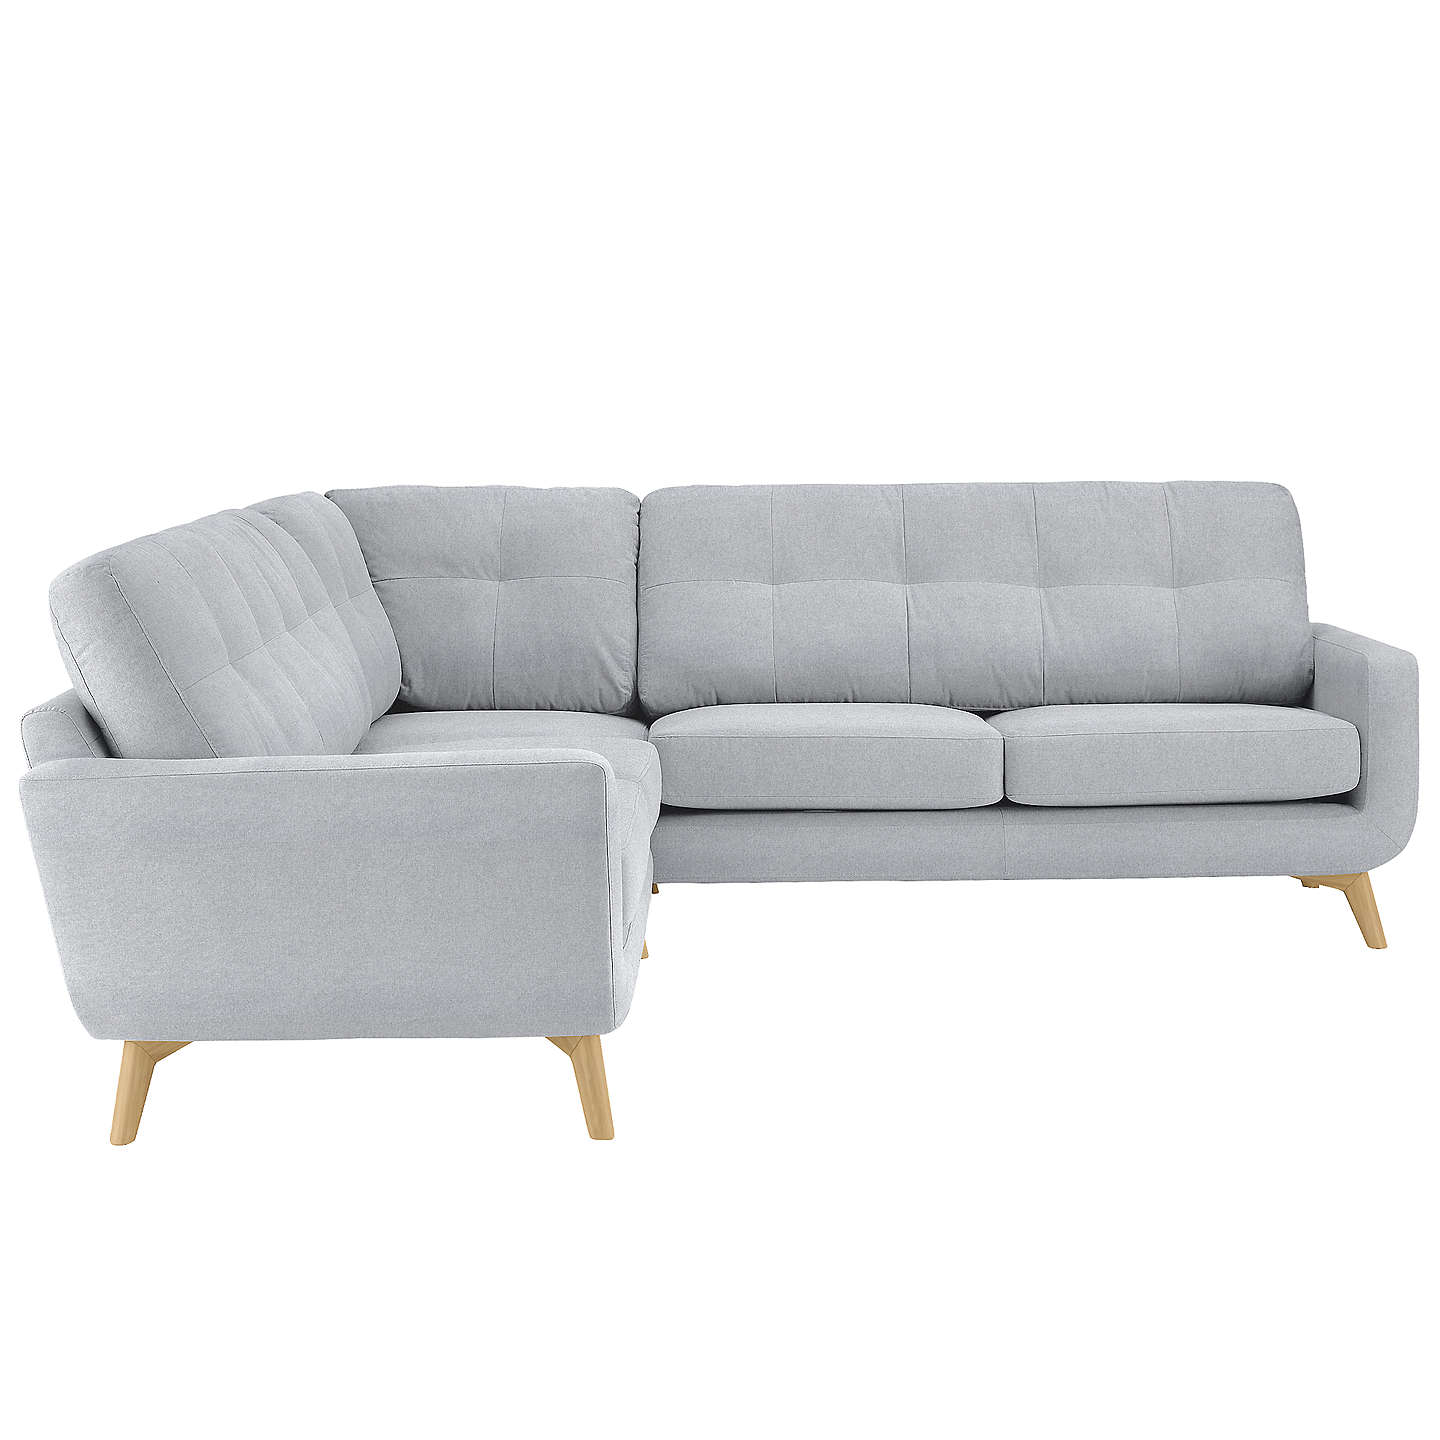 John Lewis Cooper Corner Sofa: John Lewis Barbican Corner End Sofa, Light Leg At John Lewis